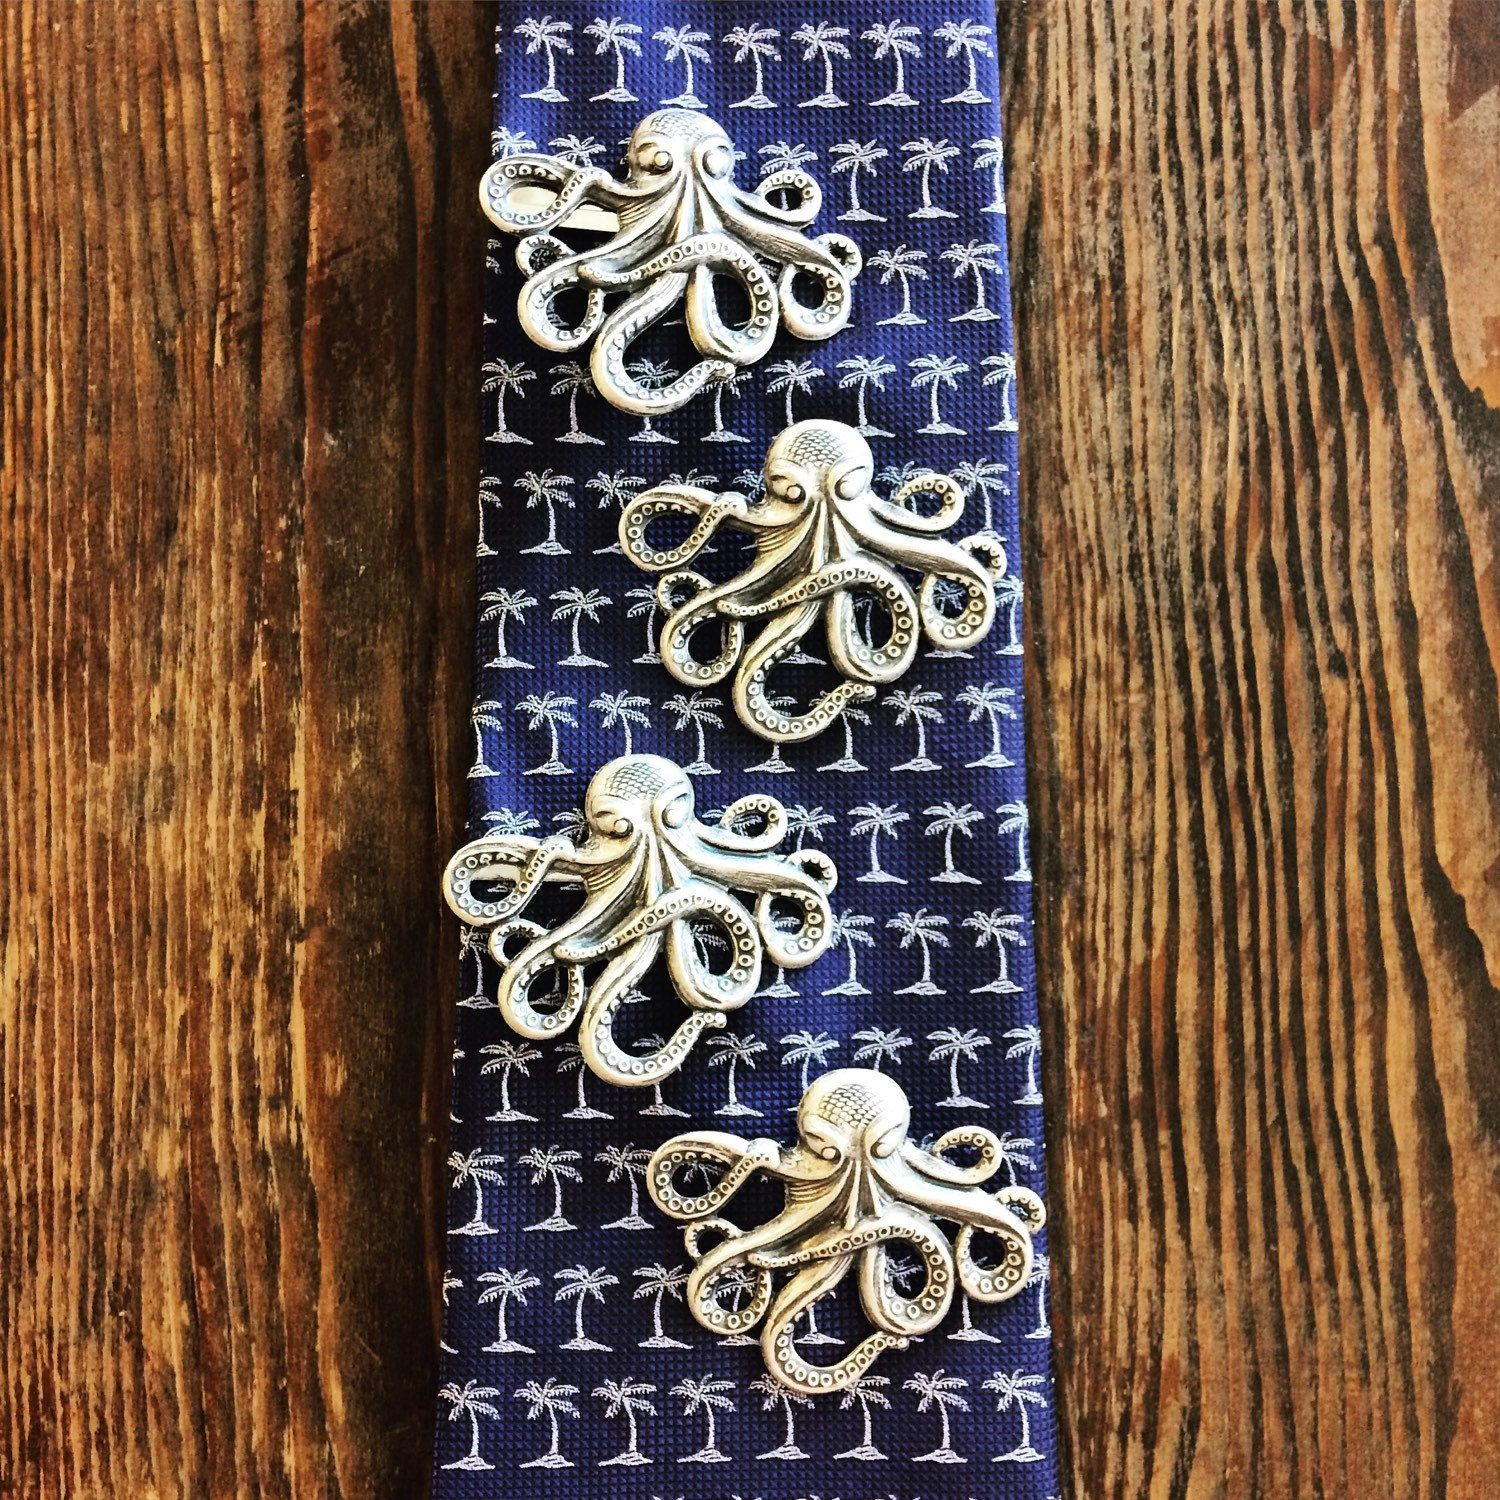 ALL the #octopuses!!  #Handmade tie-tacks and tie-clips shipping out to their new homes today..   #octopus #octopi #nautical #steampunk #seacreatures #kraken #lapelpin #tiebar #mensfashion #mensaccessories #dapper #unisex #mensstyle #handmadewithlove #handmadeaccessory #giftideas #jewelrymaker  #onlineshop #etsyseller #etsyshop #etsyhandmade #weddingfashion #weddingaccesories #groomsmen #hellostranger #beachlife #tietack #tieclip